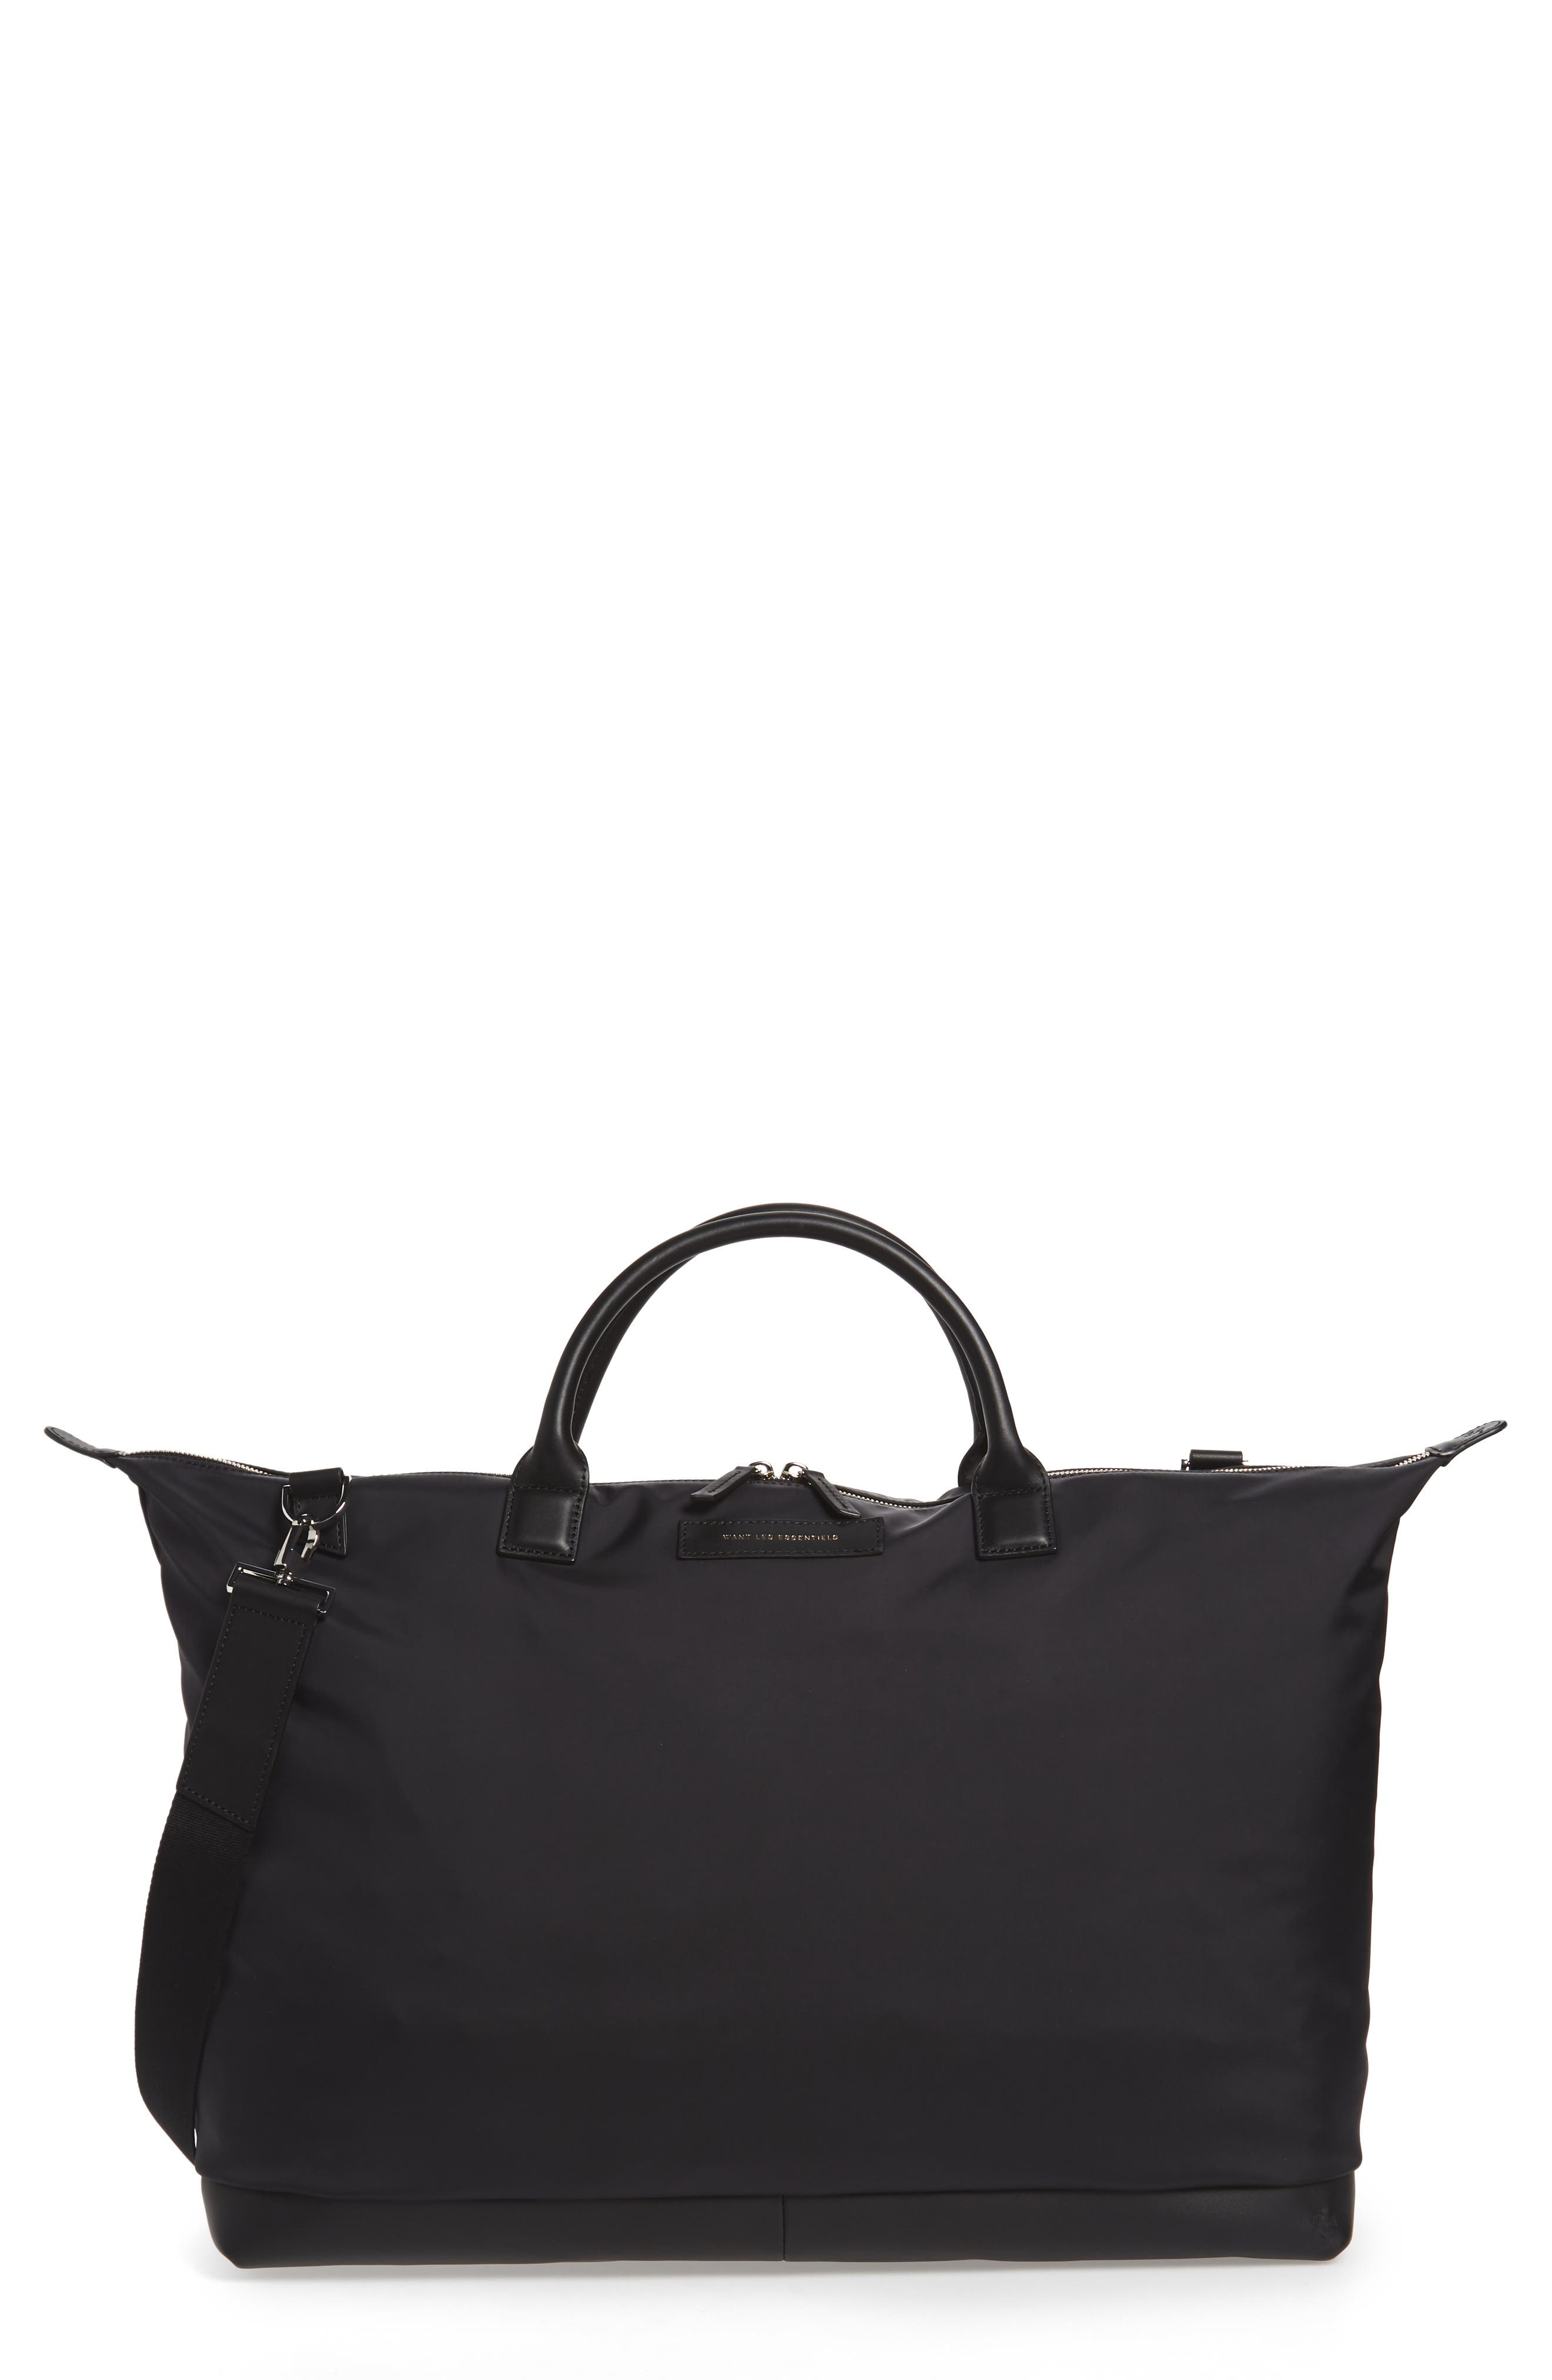 Hartsfield Nylon Tote Bag,                         Main,                         color, BLACK NYLON